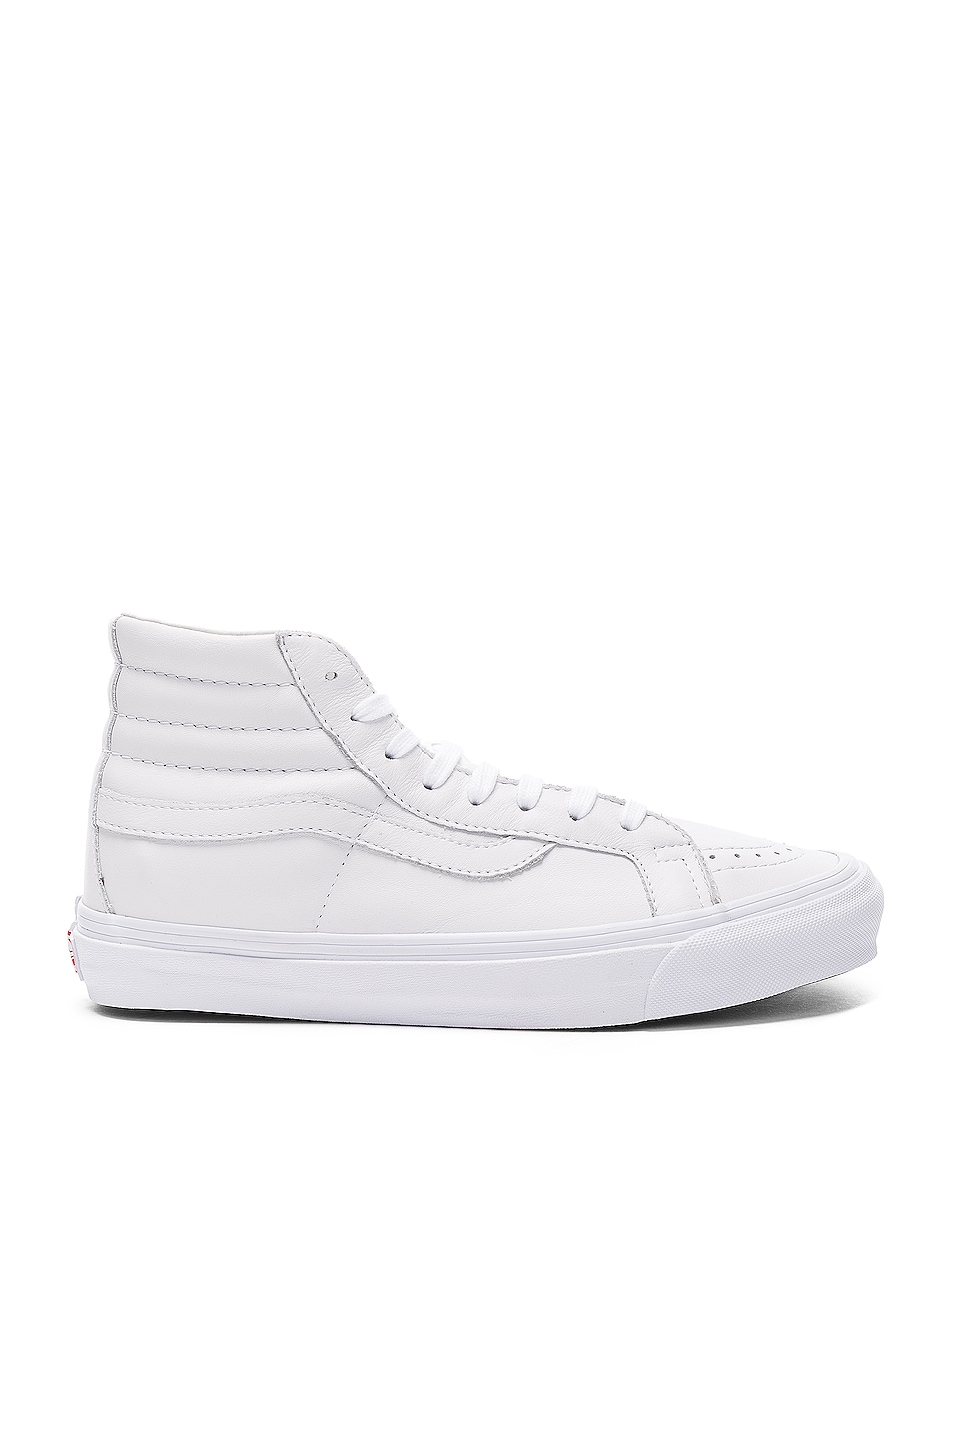 Image 1 of Vans Vault Leather OG SK8-HI LX in White